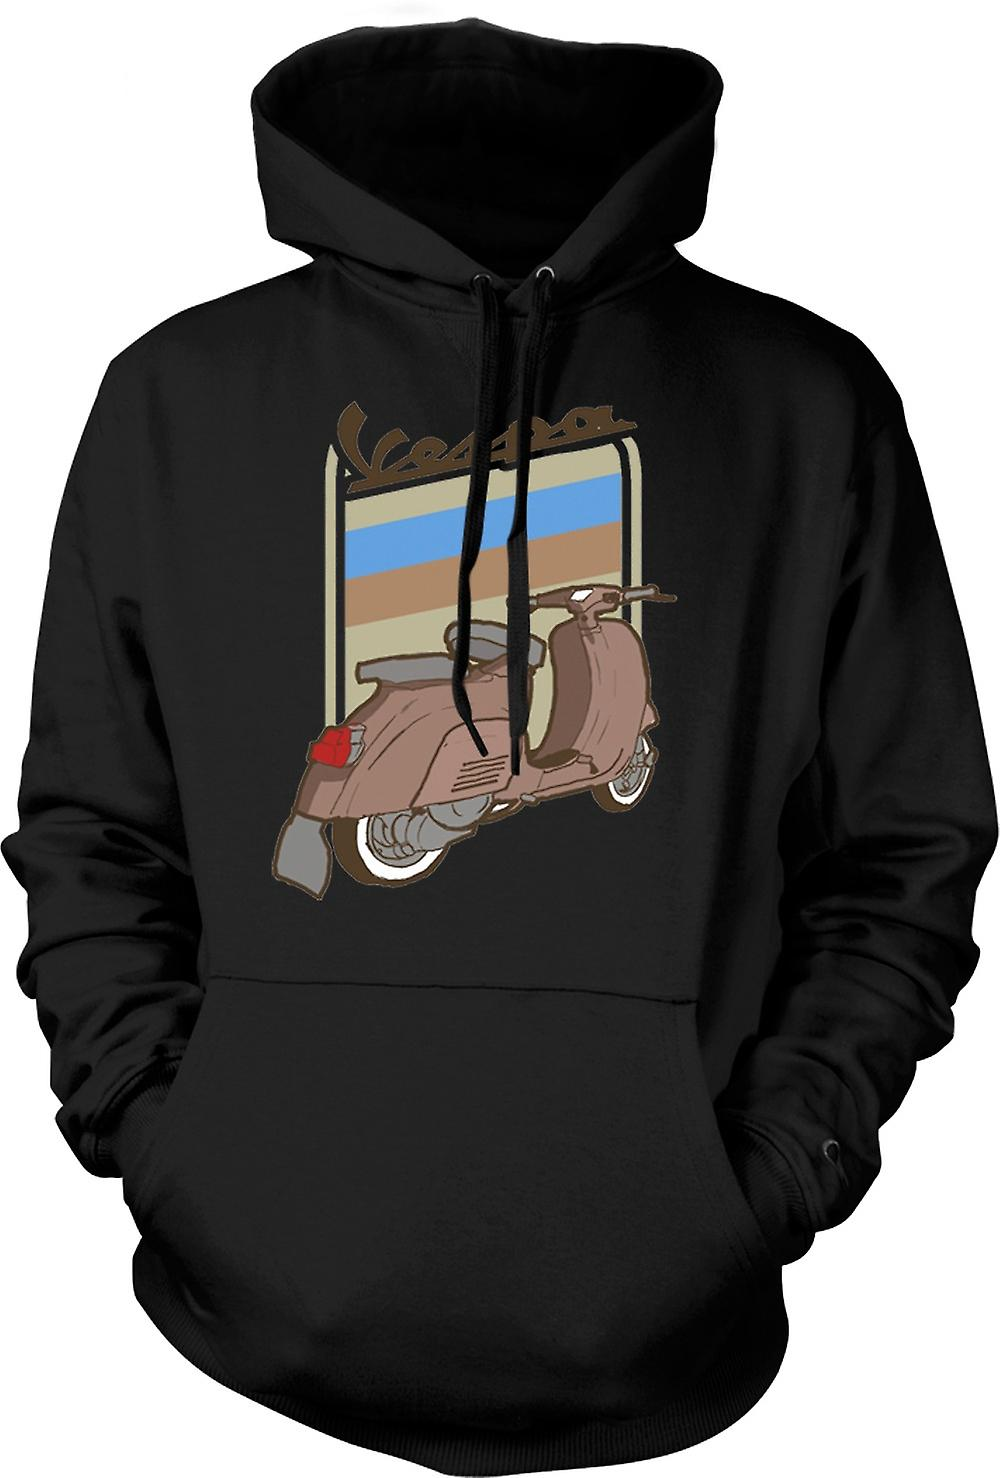 Mens Hoodie - Vespa Scooter Brown Vespa - Pop Art